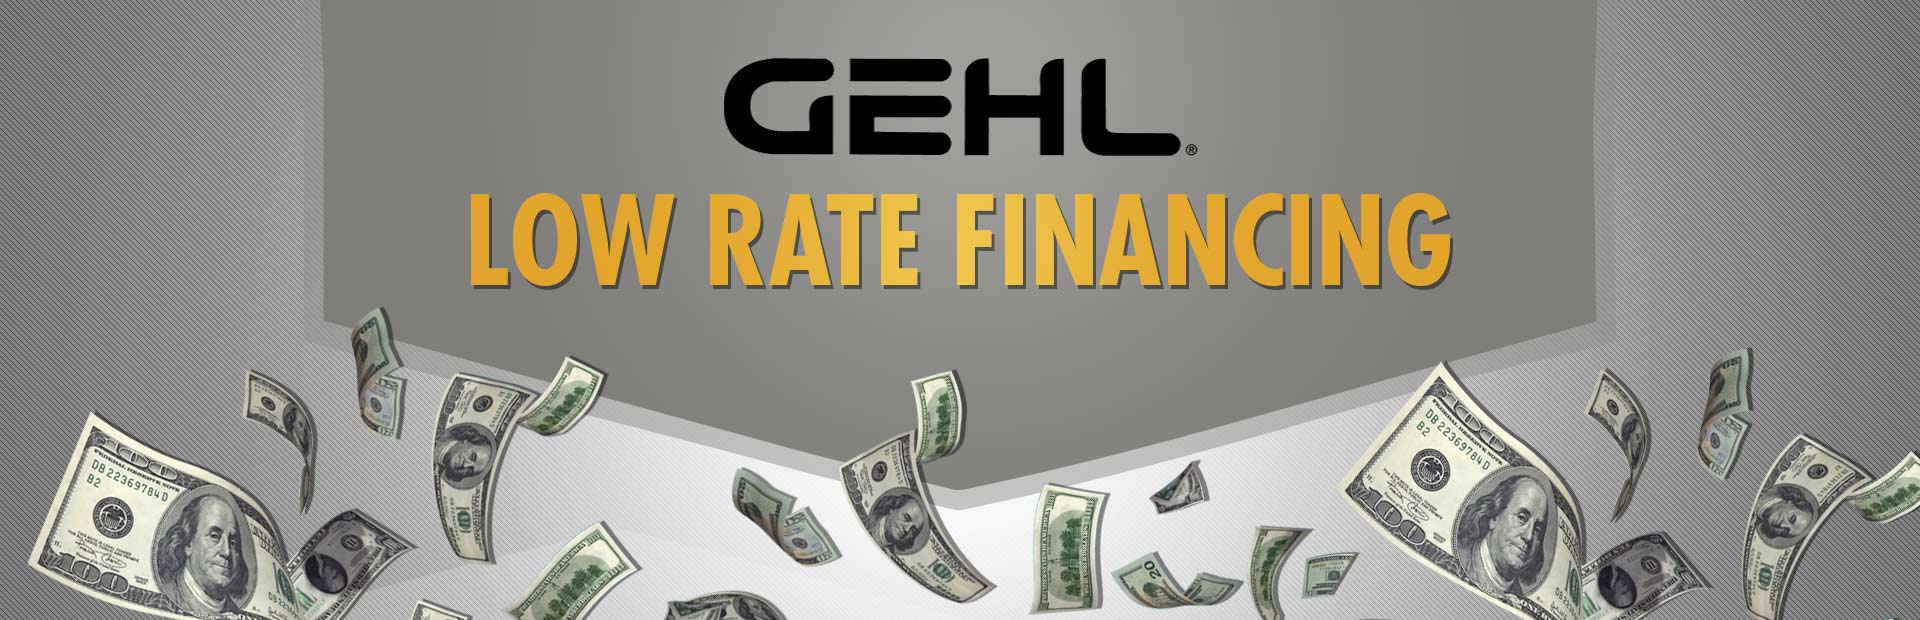 Gehl: Low Rate Financing